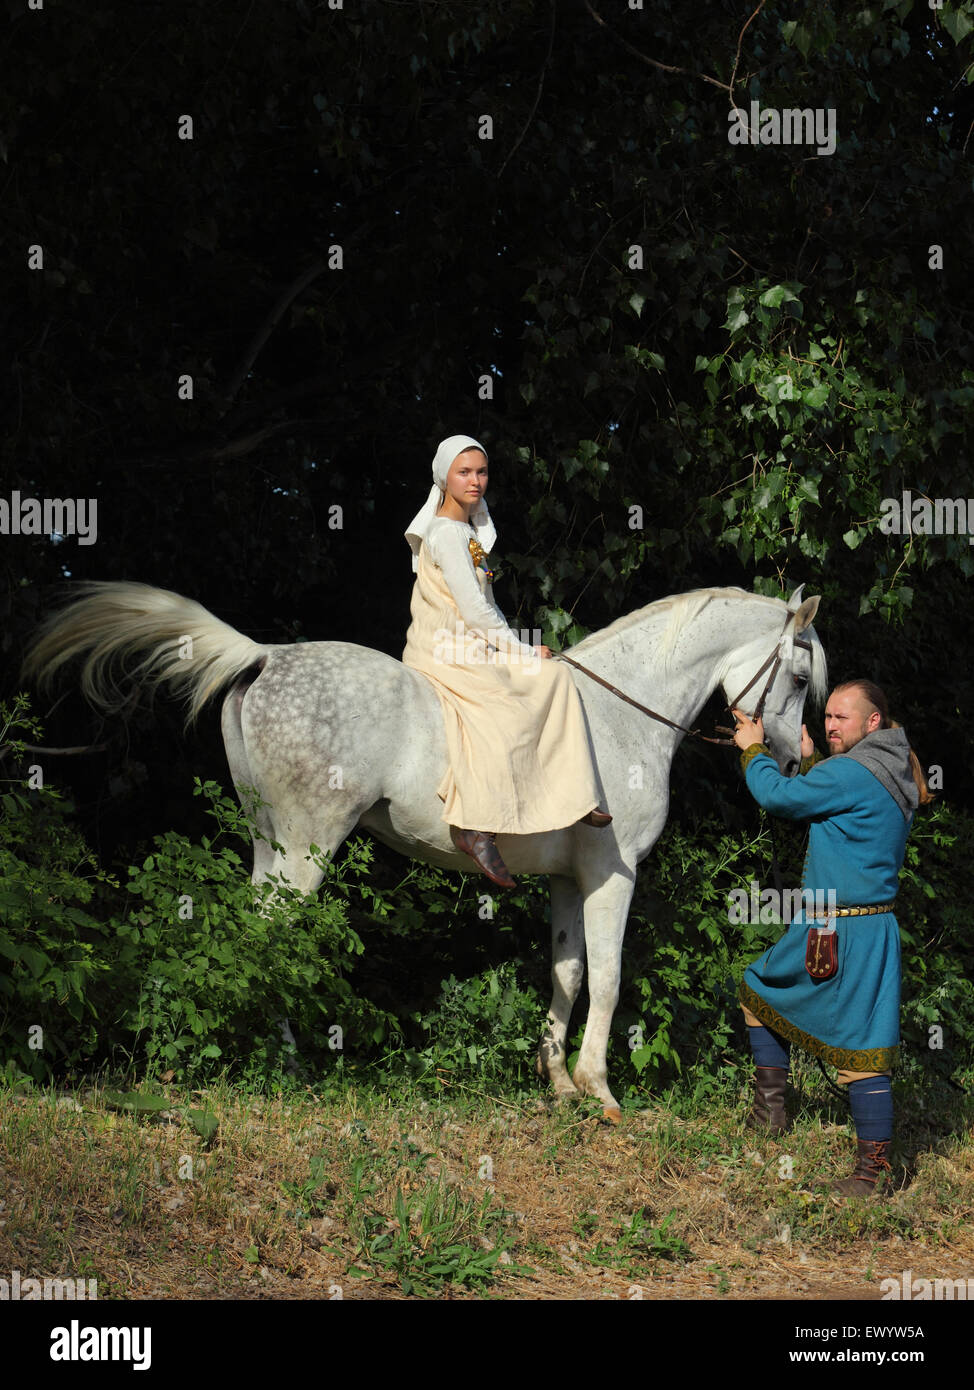 Married Couple Dressed In Clothes Of The Vikings With A Horse Stock Photo Alamy